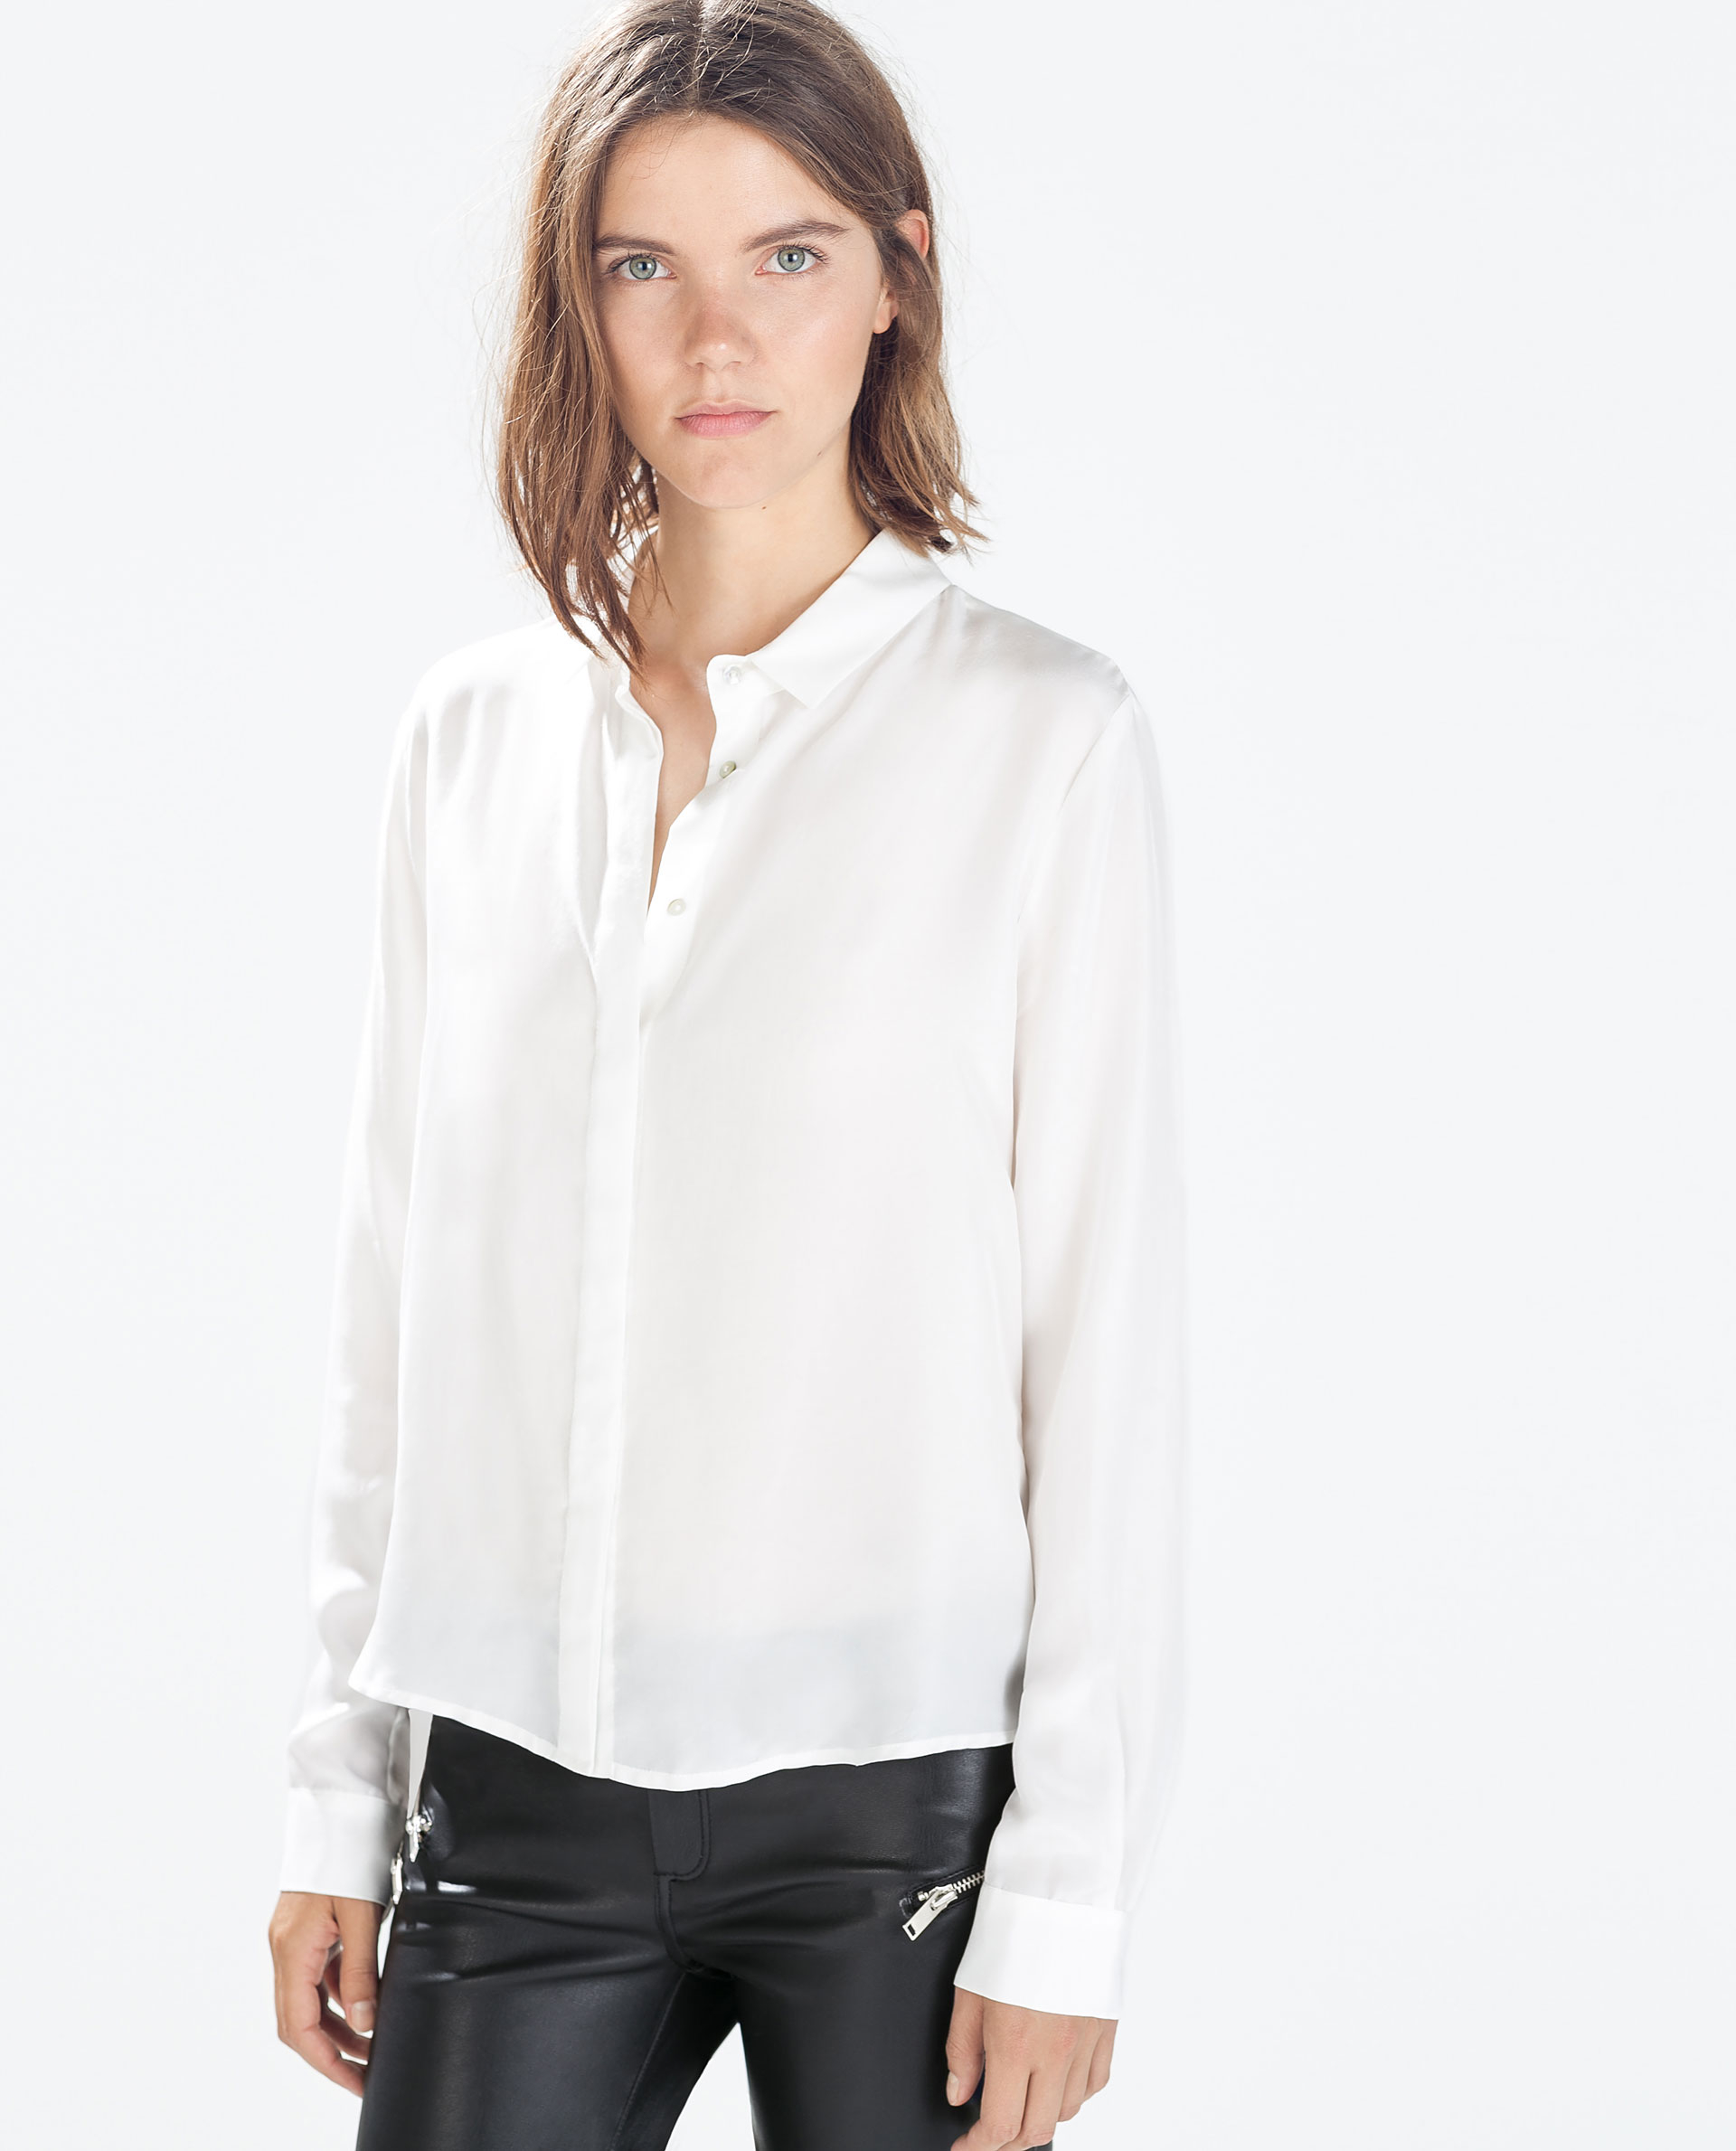 Women'S White Blouse Collar Back Button 59